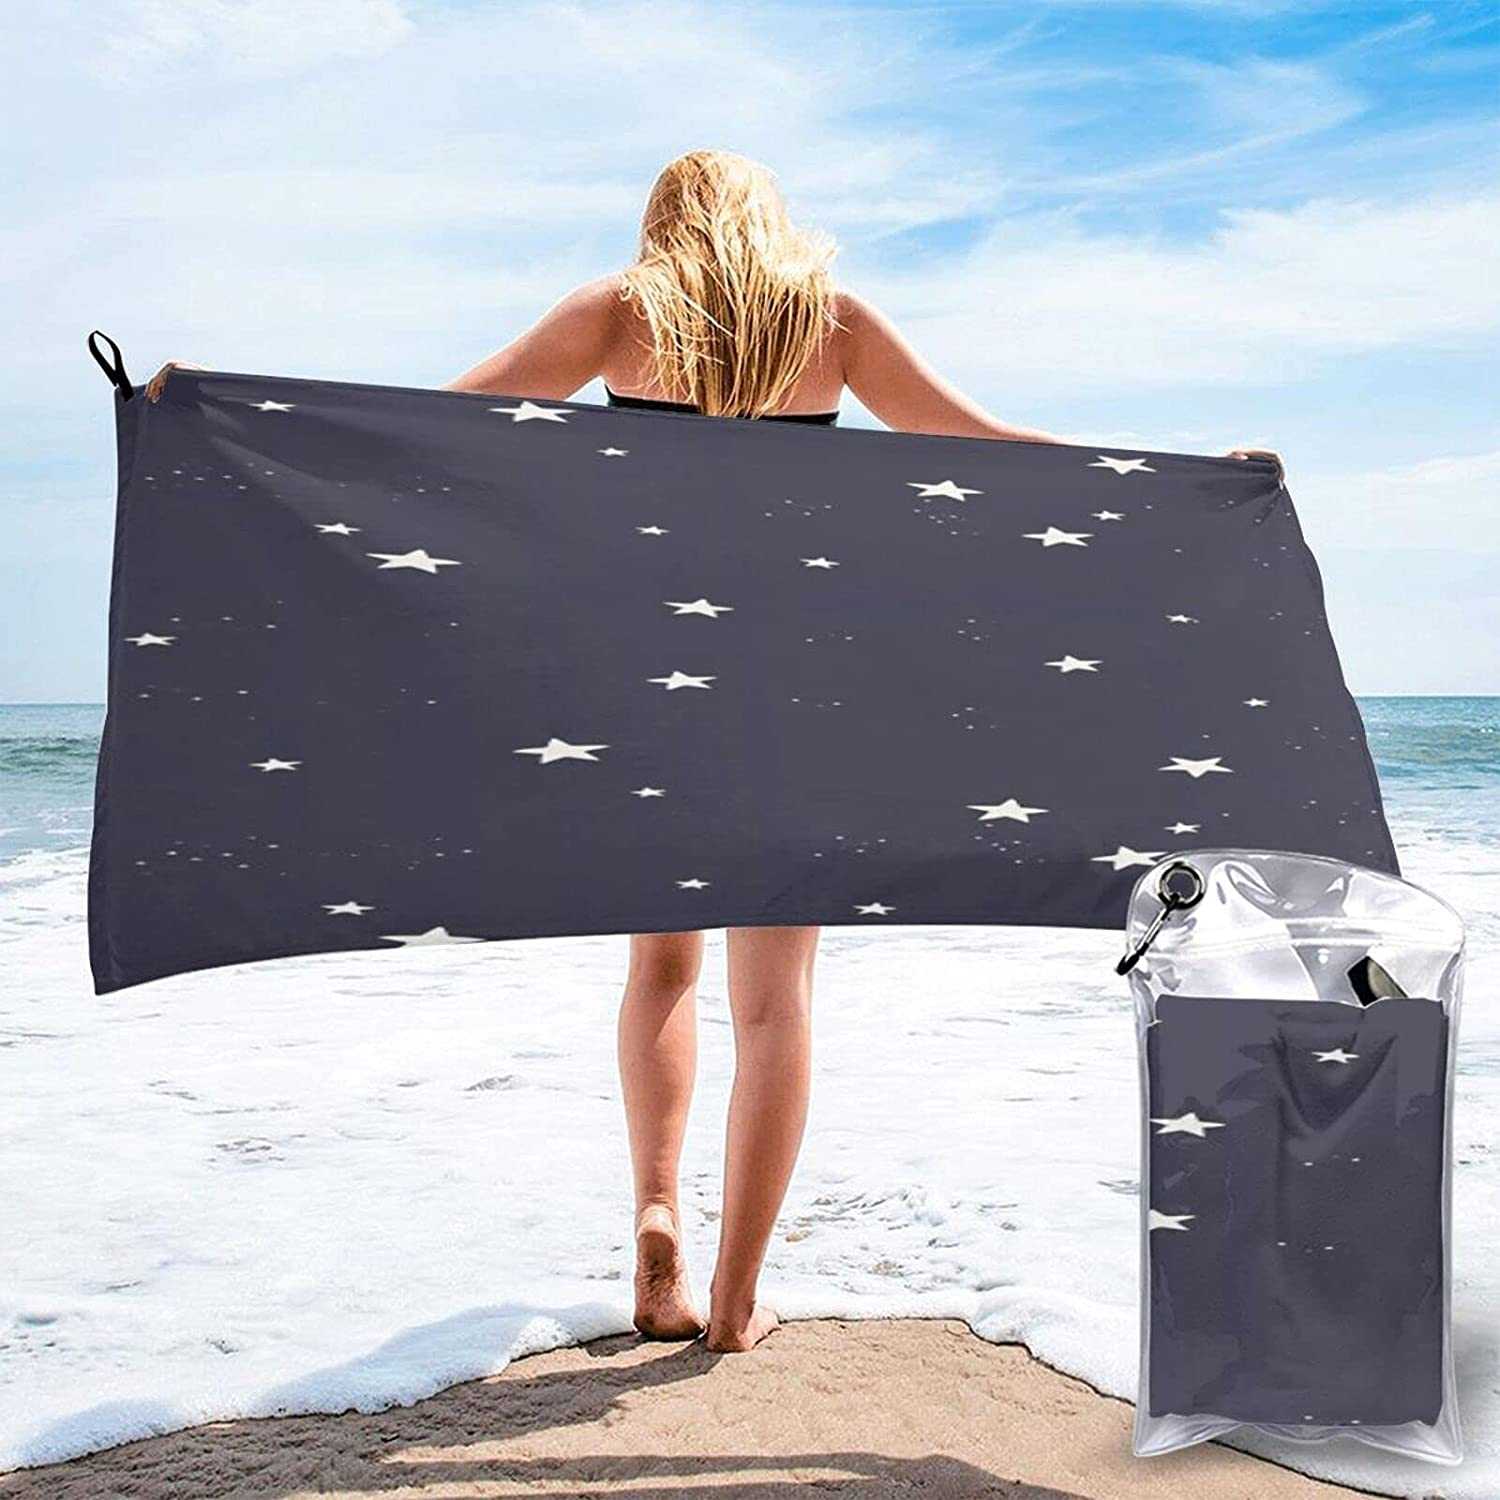 Max 63% OFF Twinkle Star Microfibre Pool Beach Towels Dry Over item handling ☆ Light Travel Quick